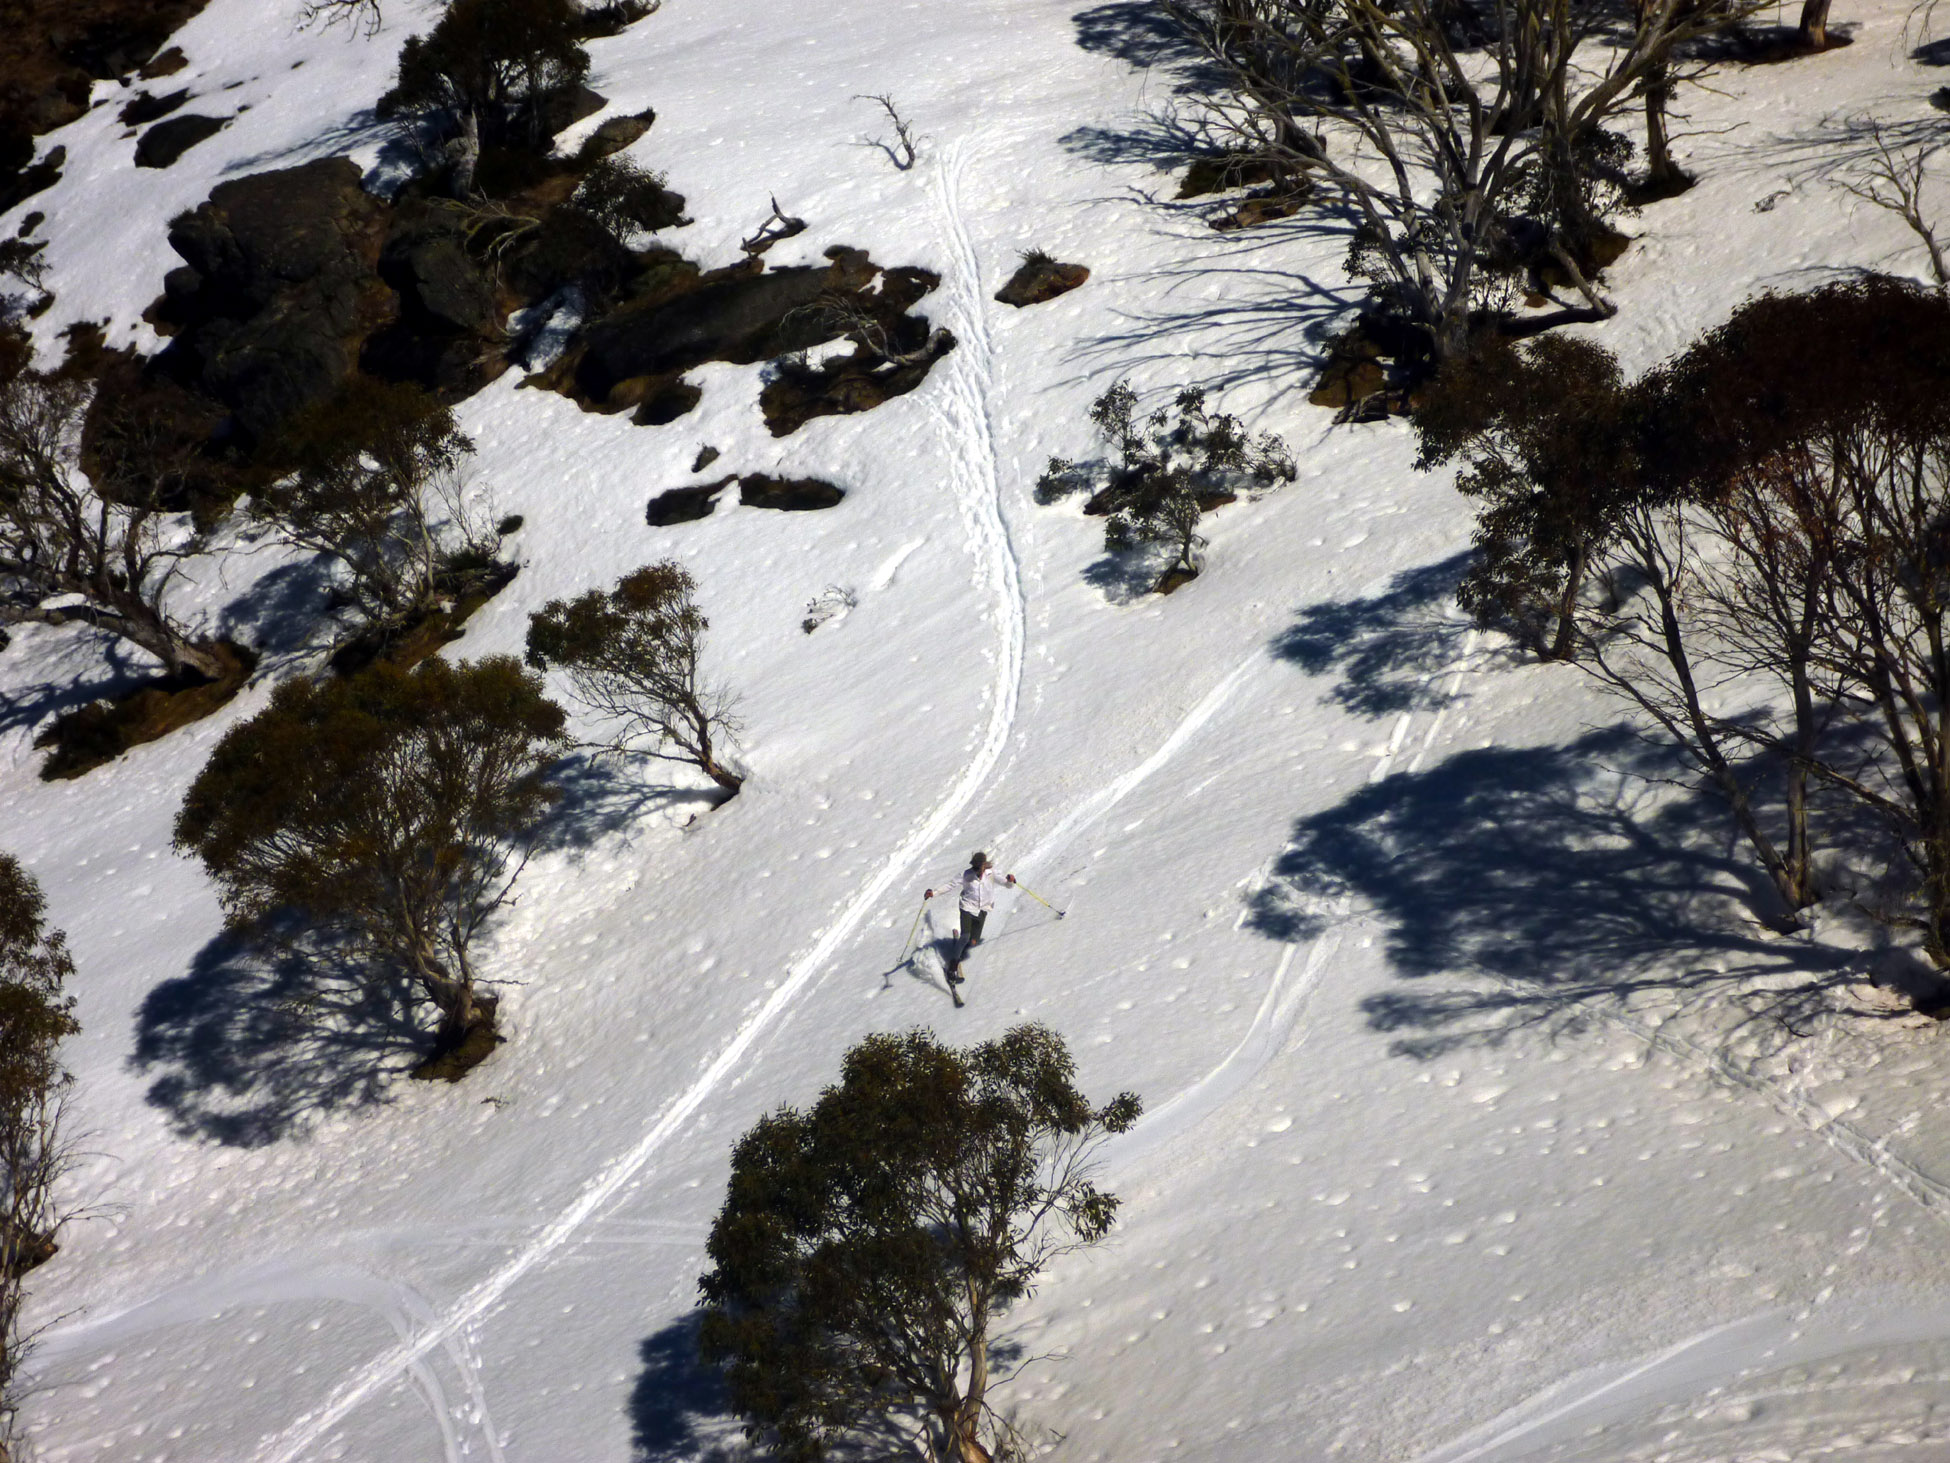 Snowsports - In winter, Glen Wills can be a great base for heading up into the mountains for snowsports.